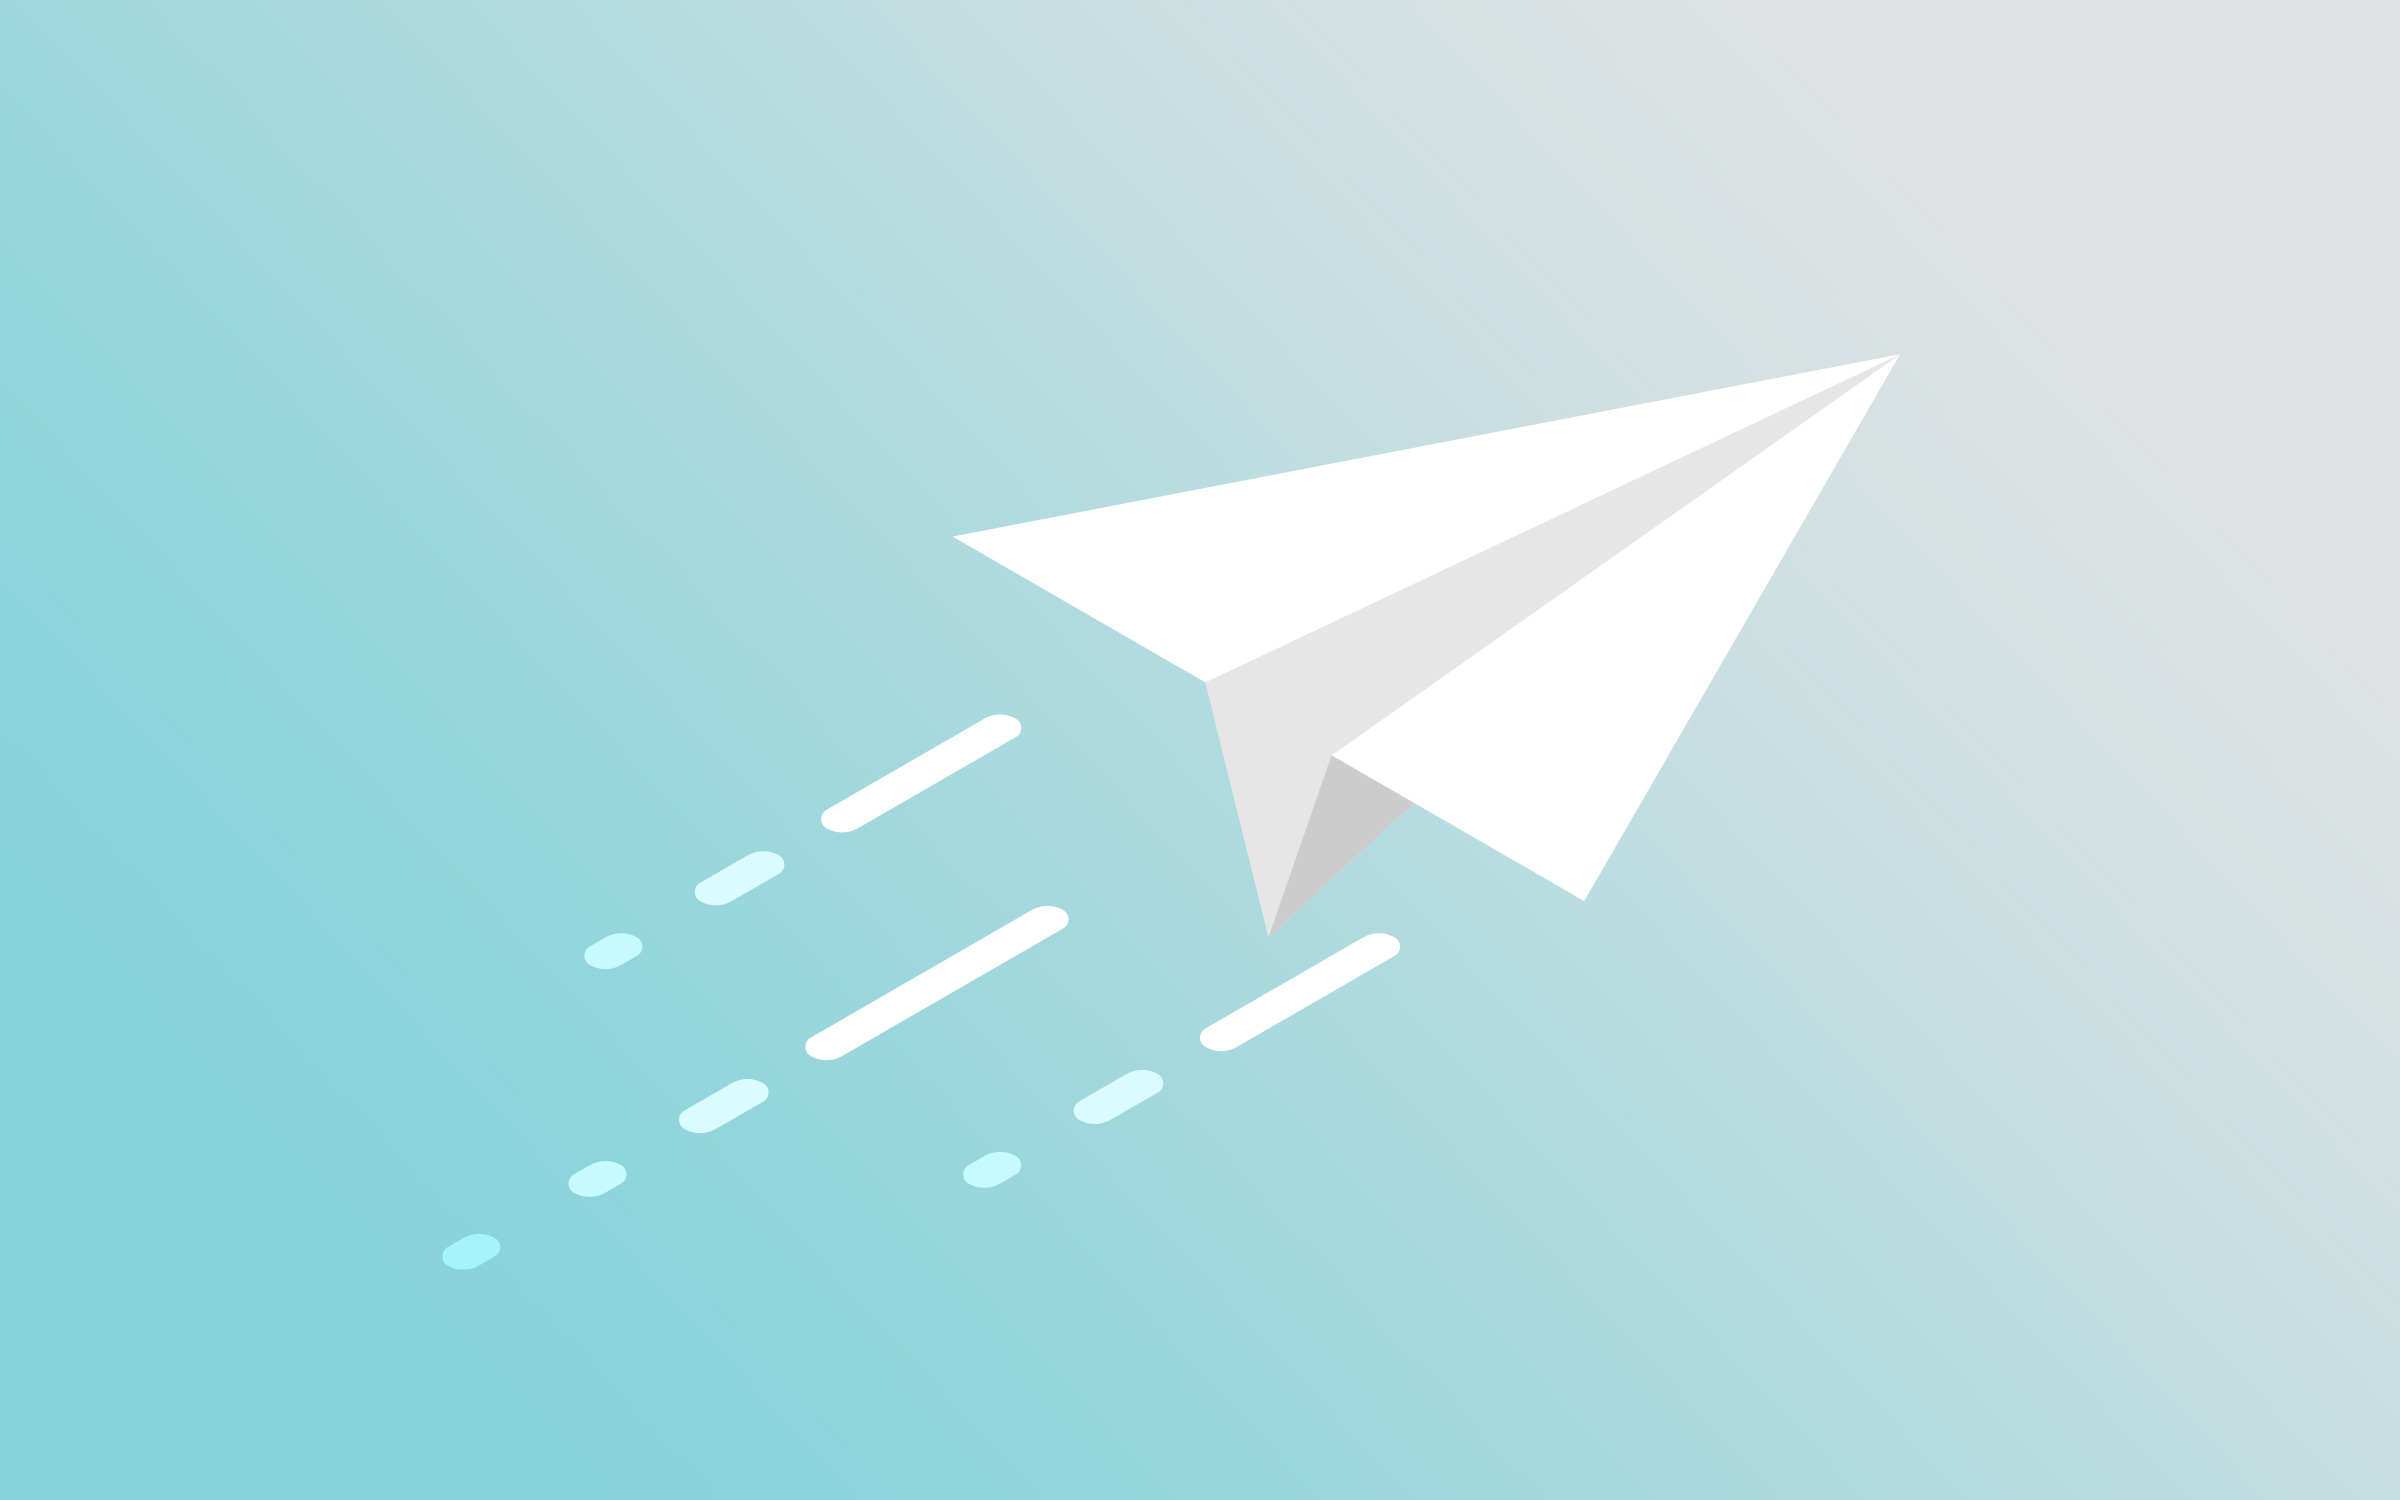 Paper airplane flying in the sky.